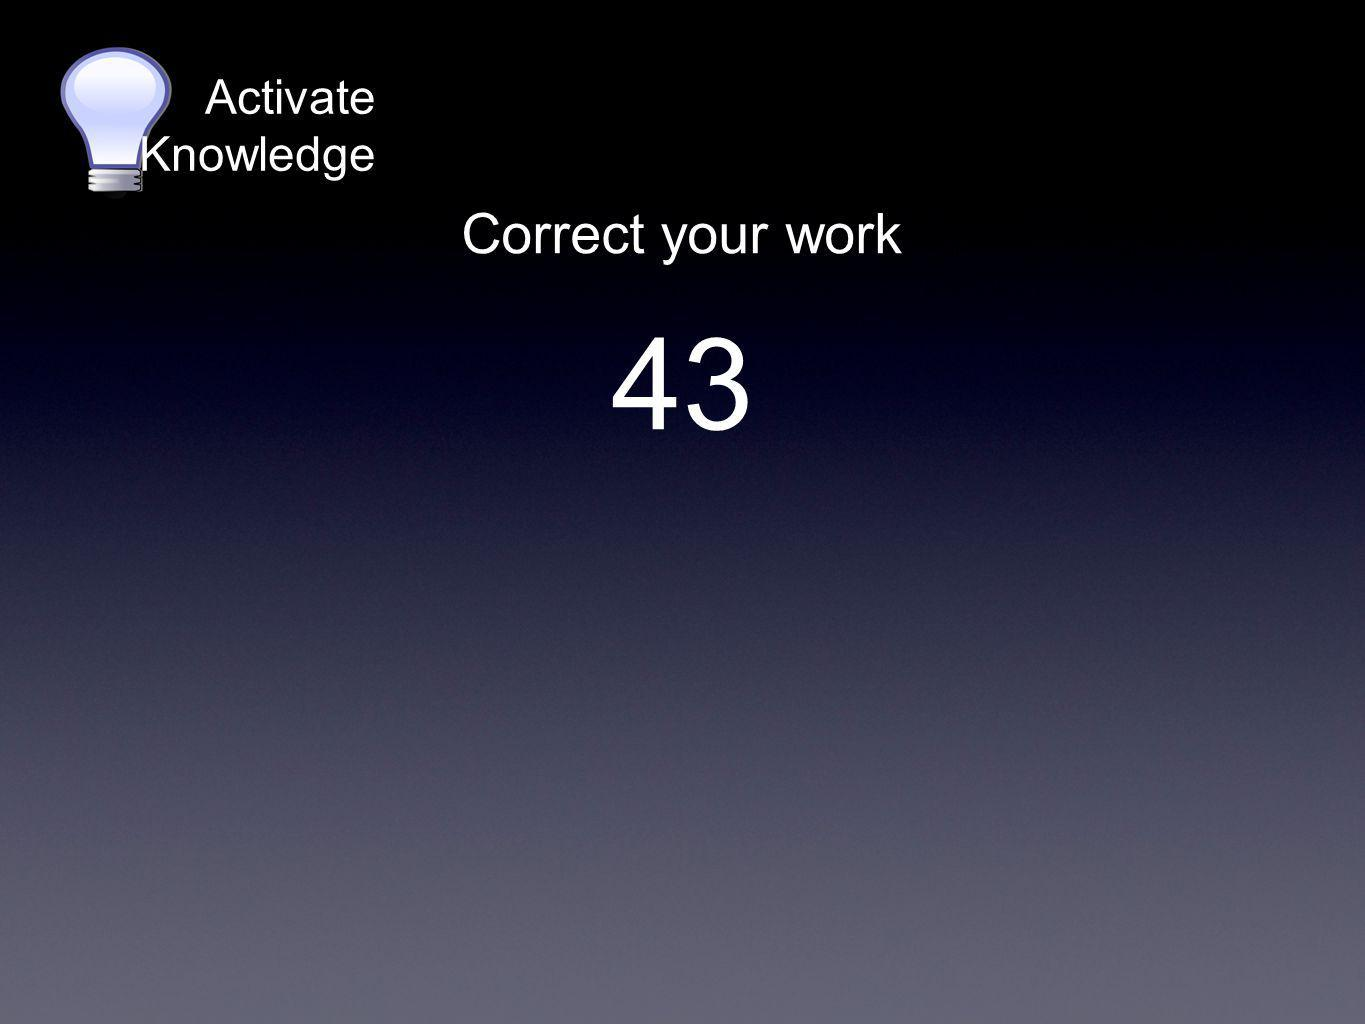 Activate Knowledge 5,482 ÷ 62 Round the divisor to the nearest 10